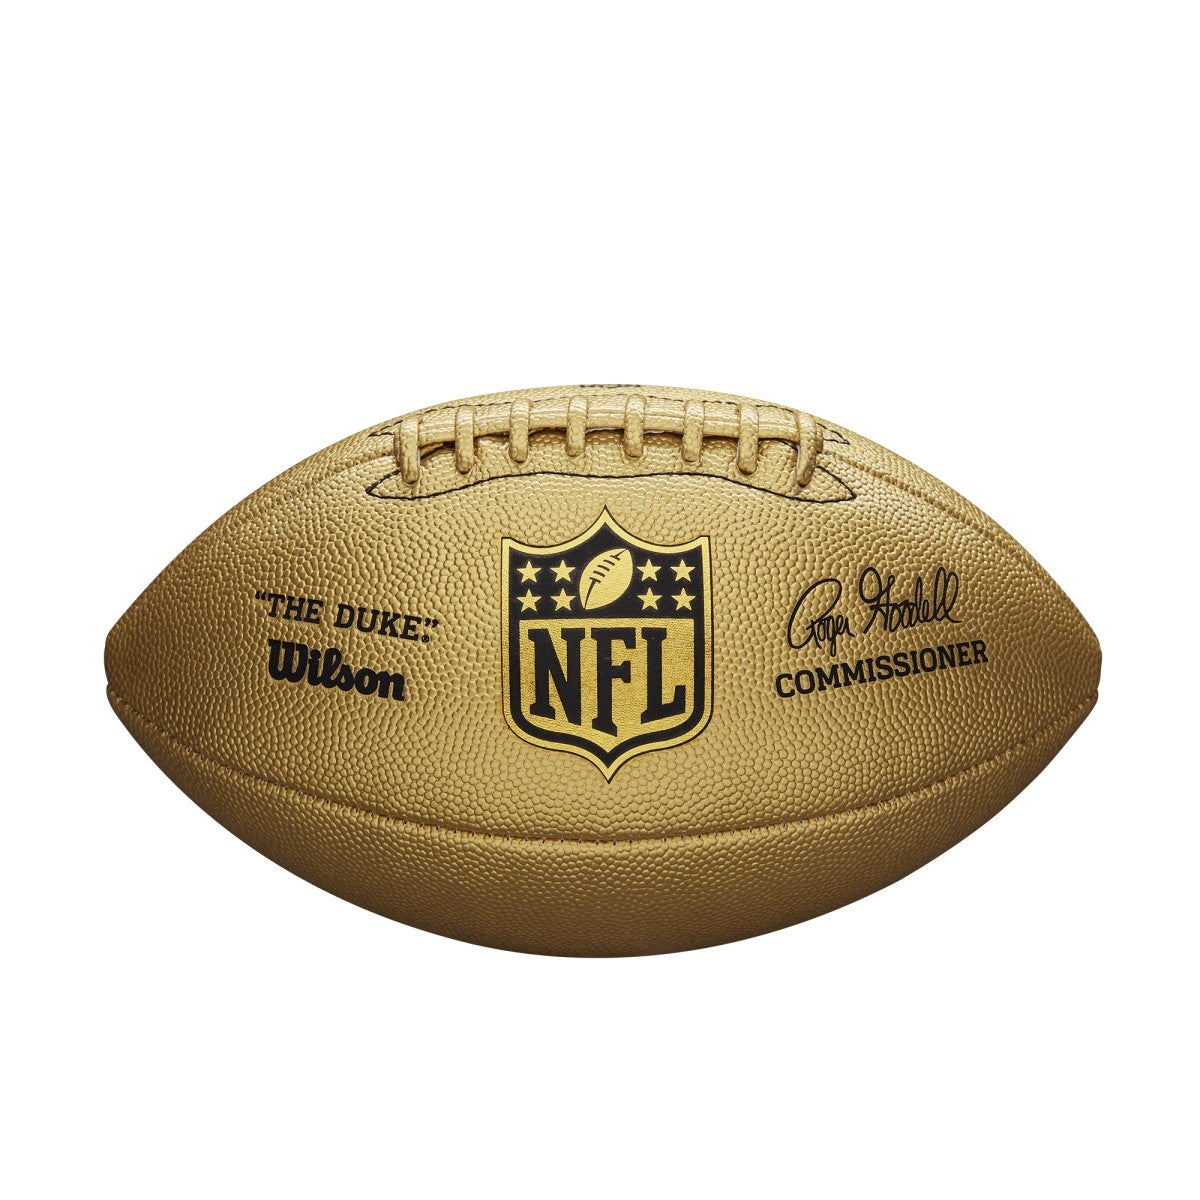 NFL The Duke Metallic Edition - Gold